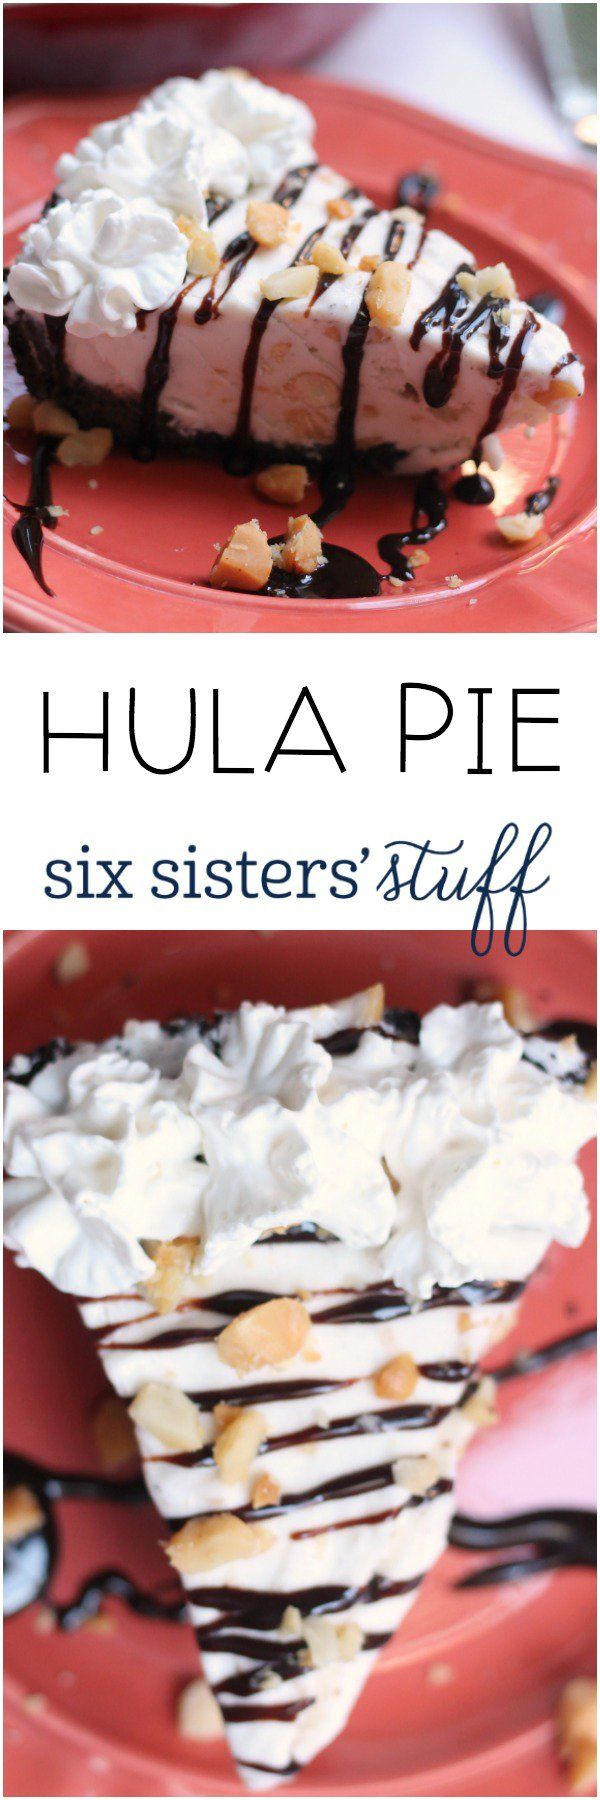 Hula Pie on Six Sisters' Stuff